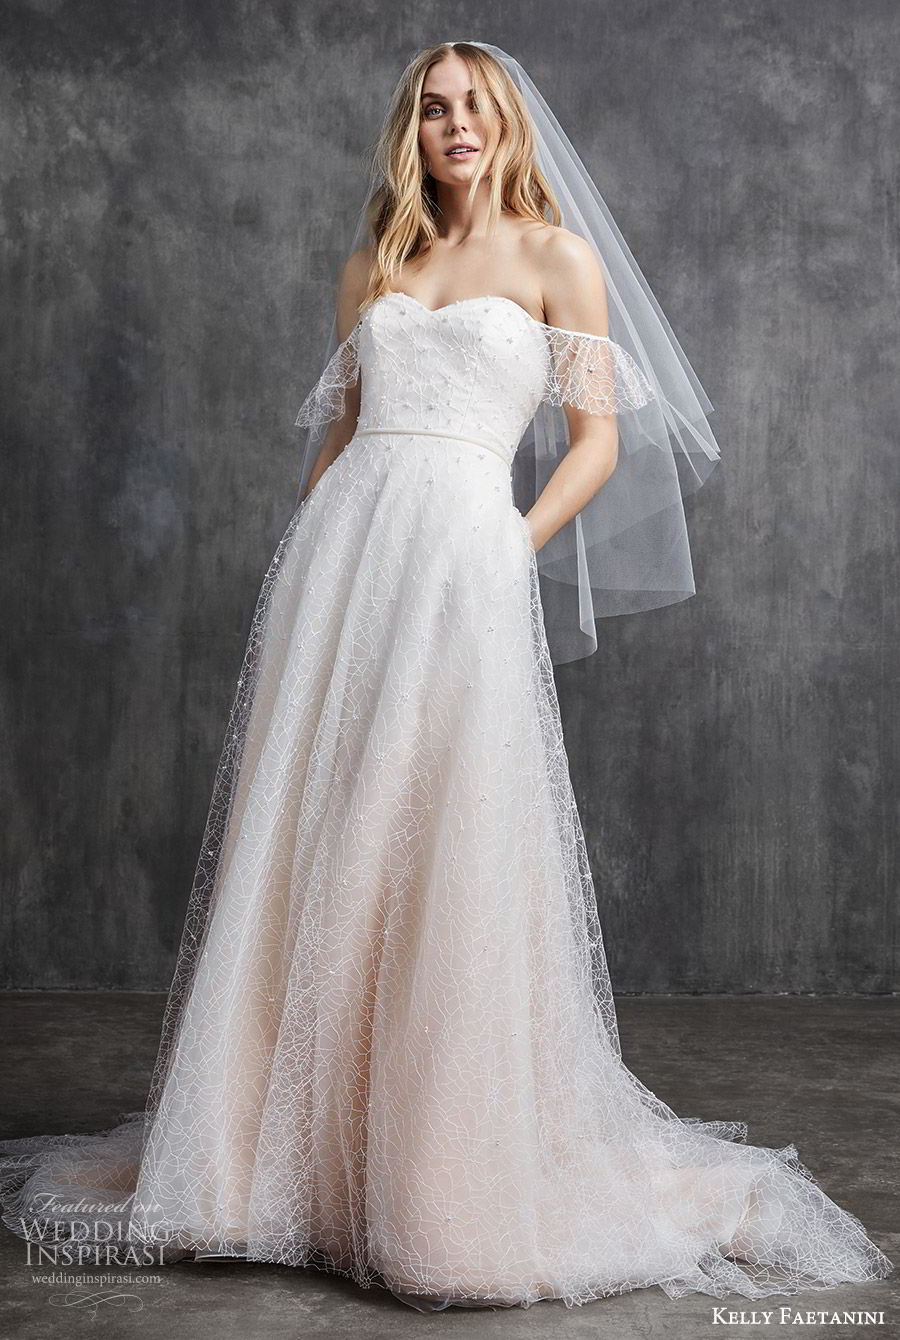 kelly faetanini spring 2020 bridal off shoulder illusion flutter sleeves sweetheart fully embellished a line ball gown wedding dress (7) ombre blush chapel train mv